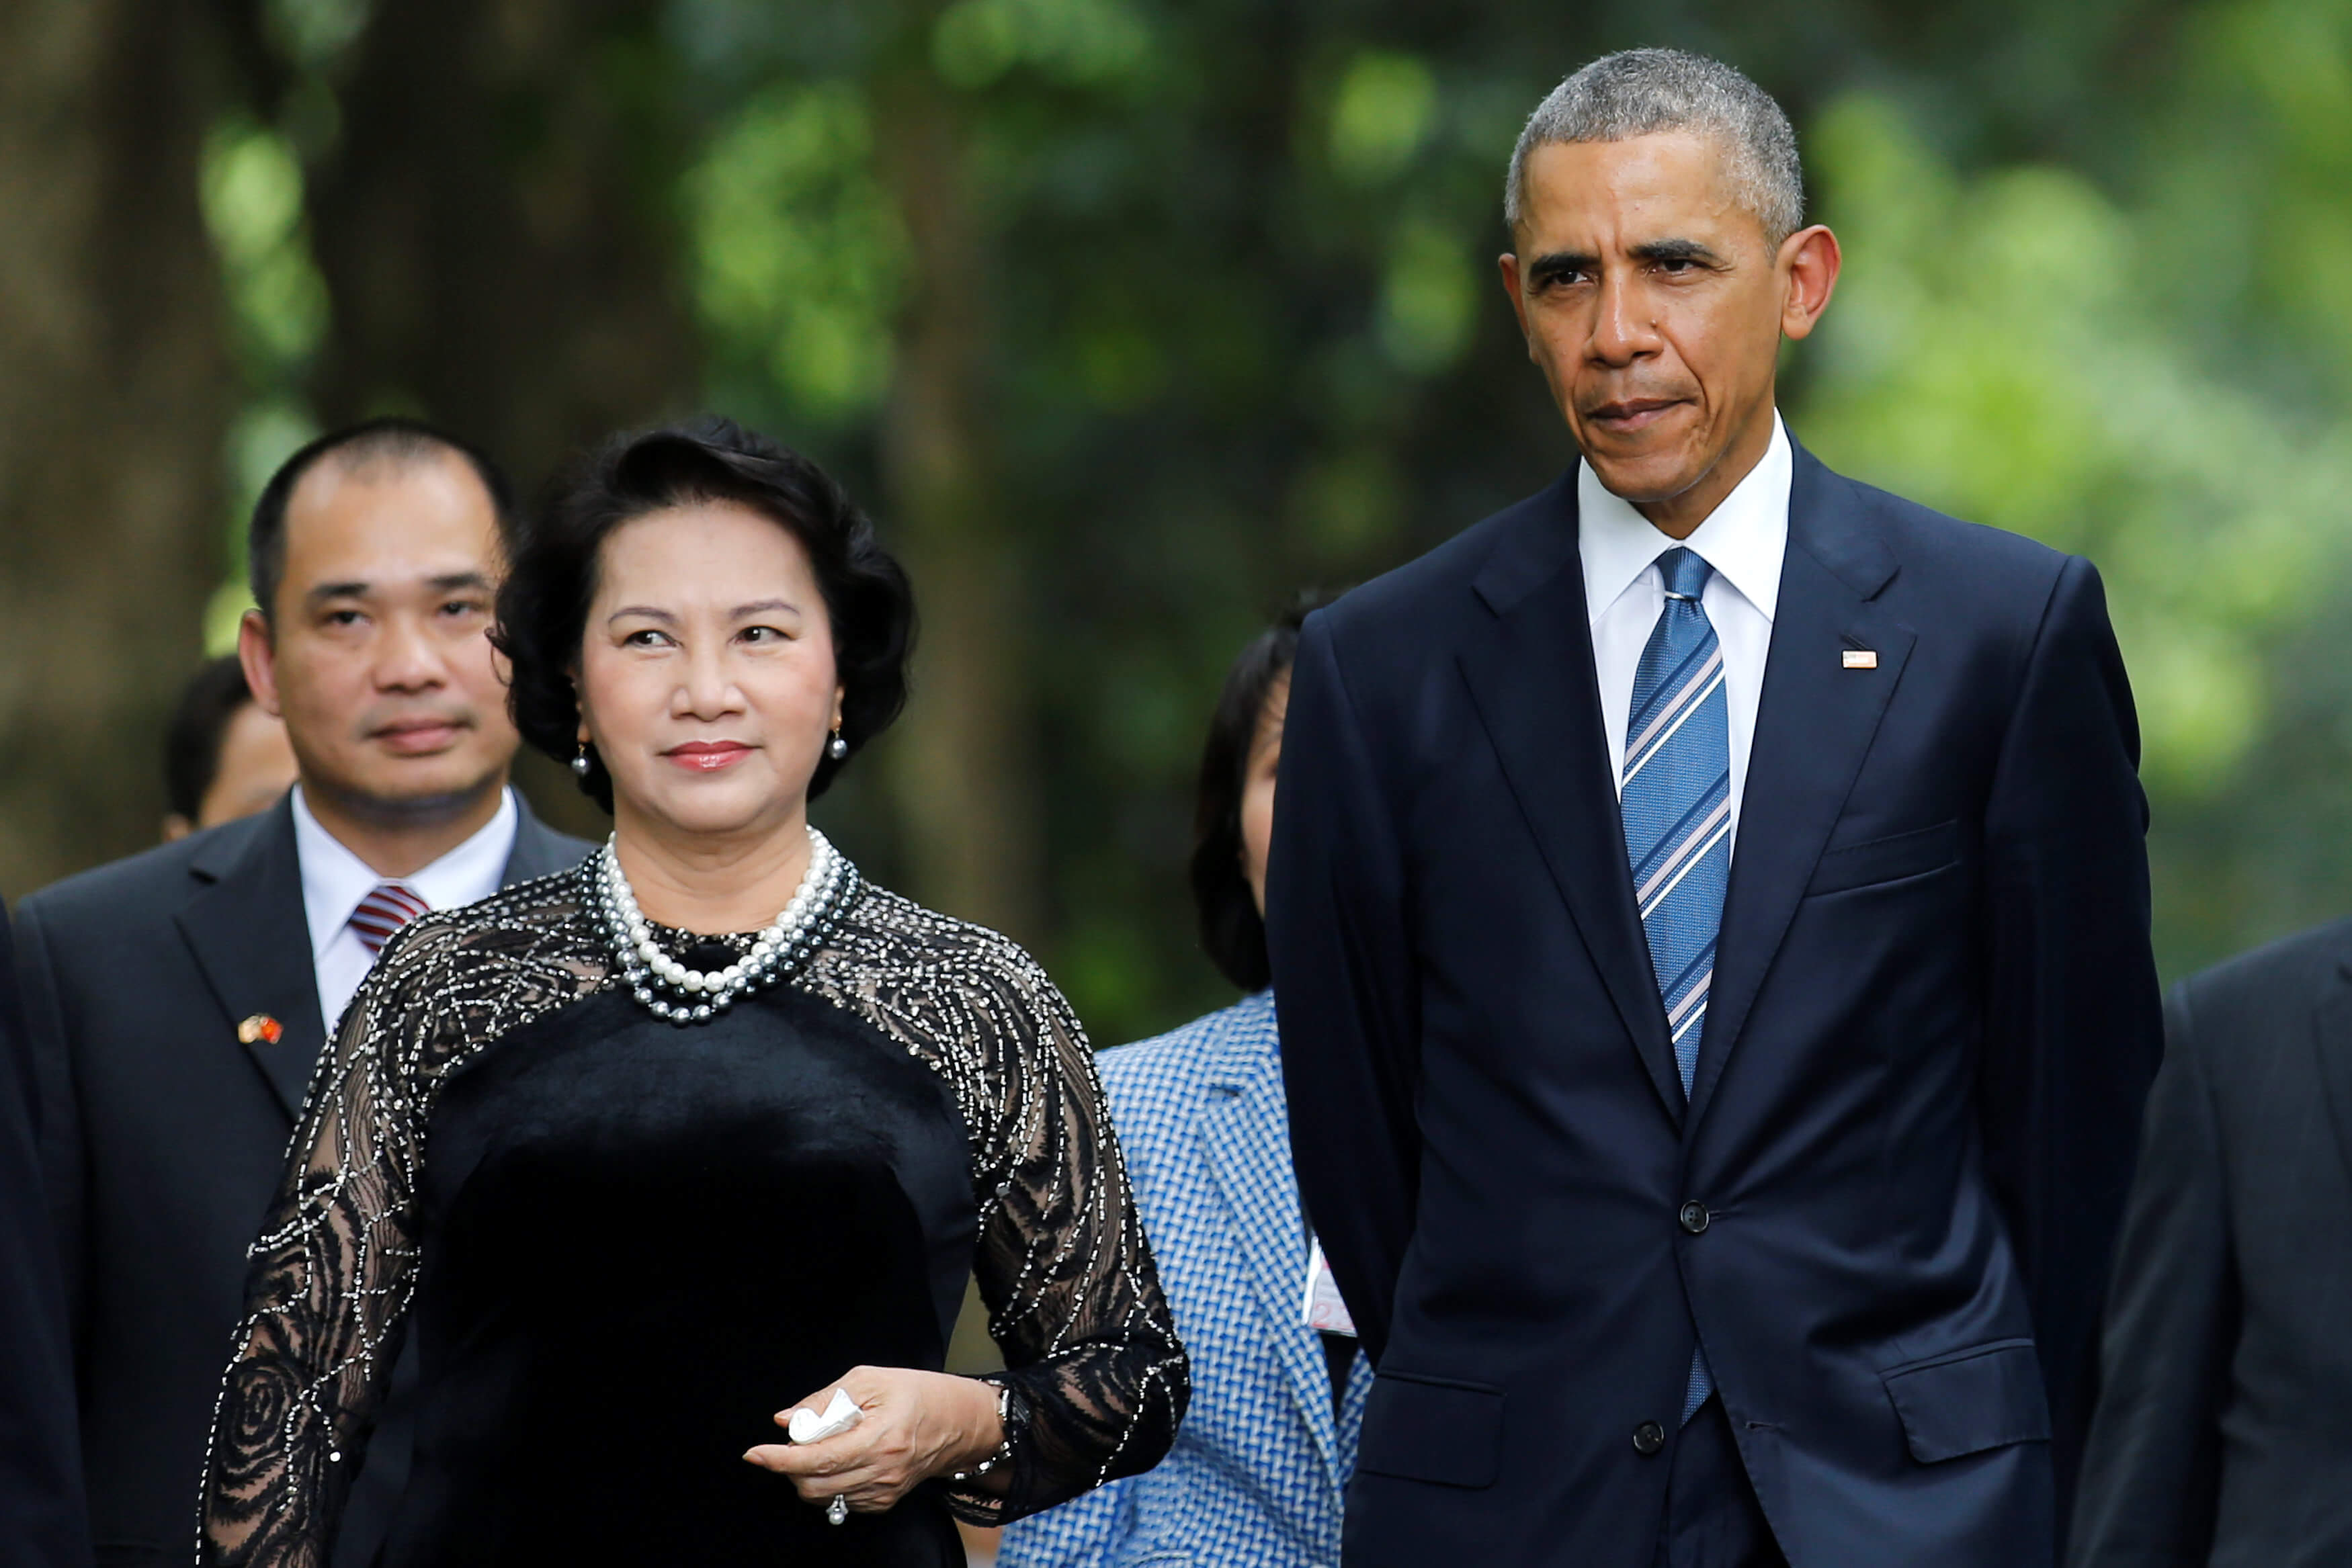 U.S. President Barack Obama walks with Vietnam's National Assembly Chairwoman Nguyen Thi Kim Ngan during a visit at the gardens of the presidential palace in Hanoi, Vietnam May 23, 2016. REUTERS/Carlos Barria